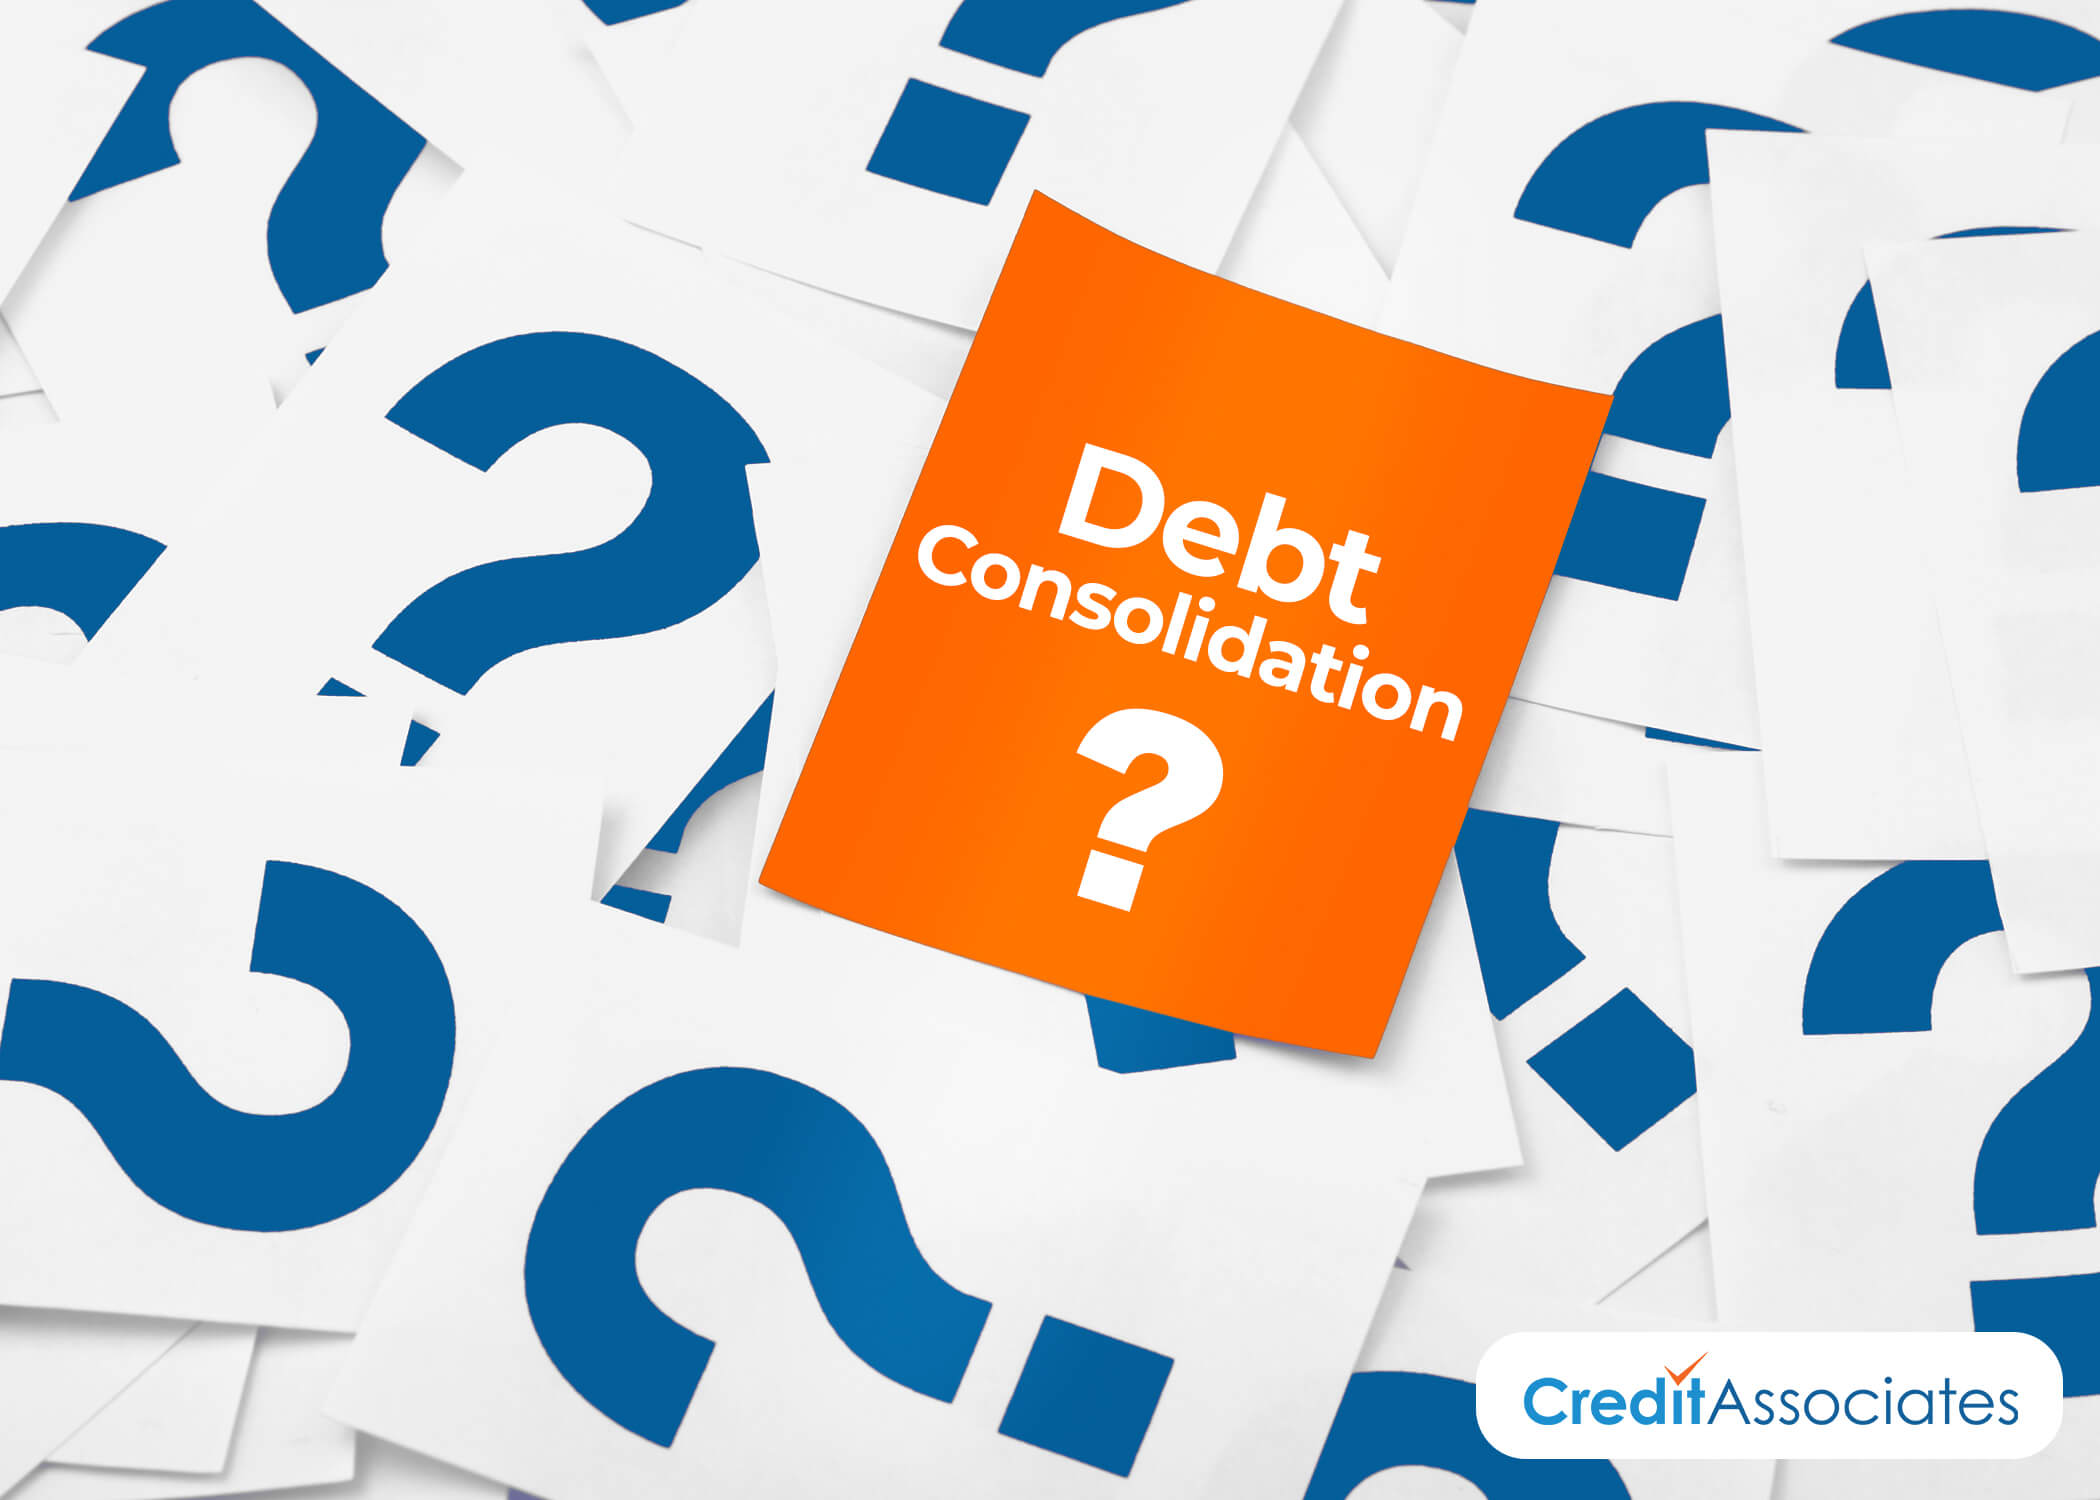 What's the Best Way to Consolidate Debt?